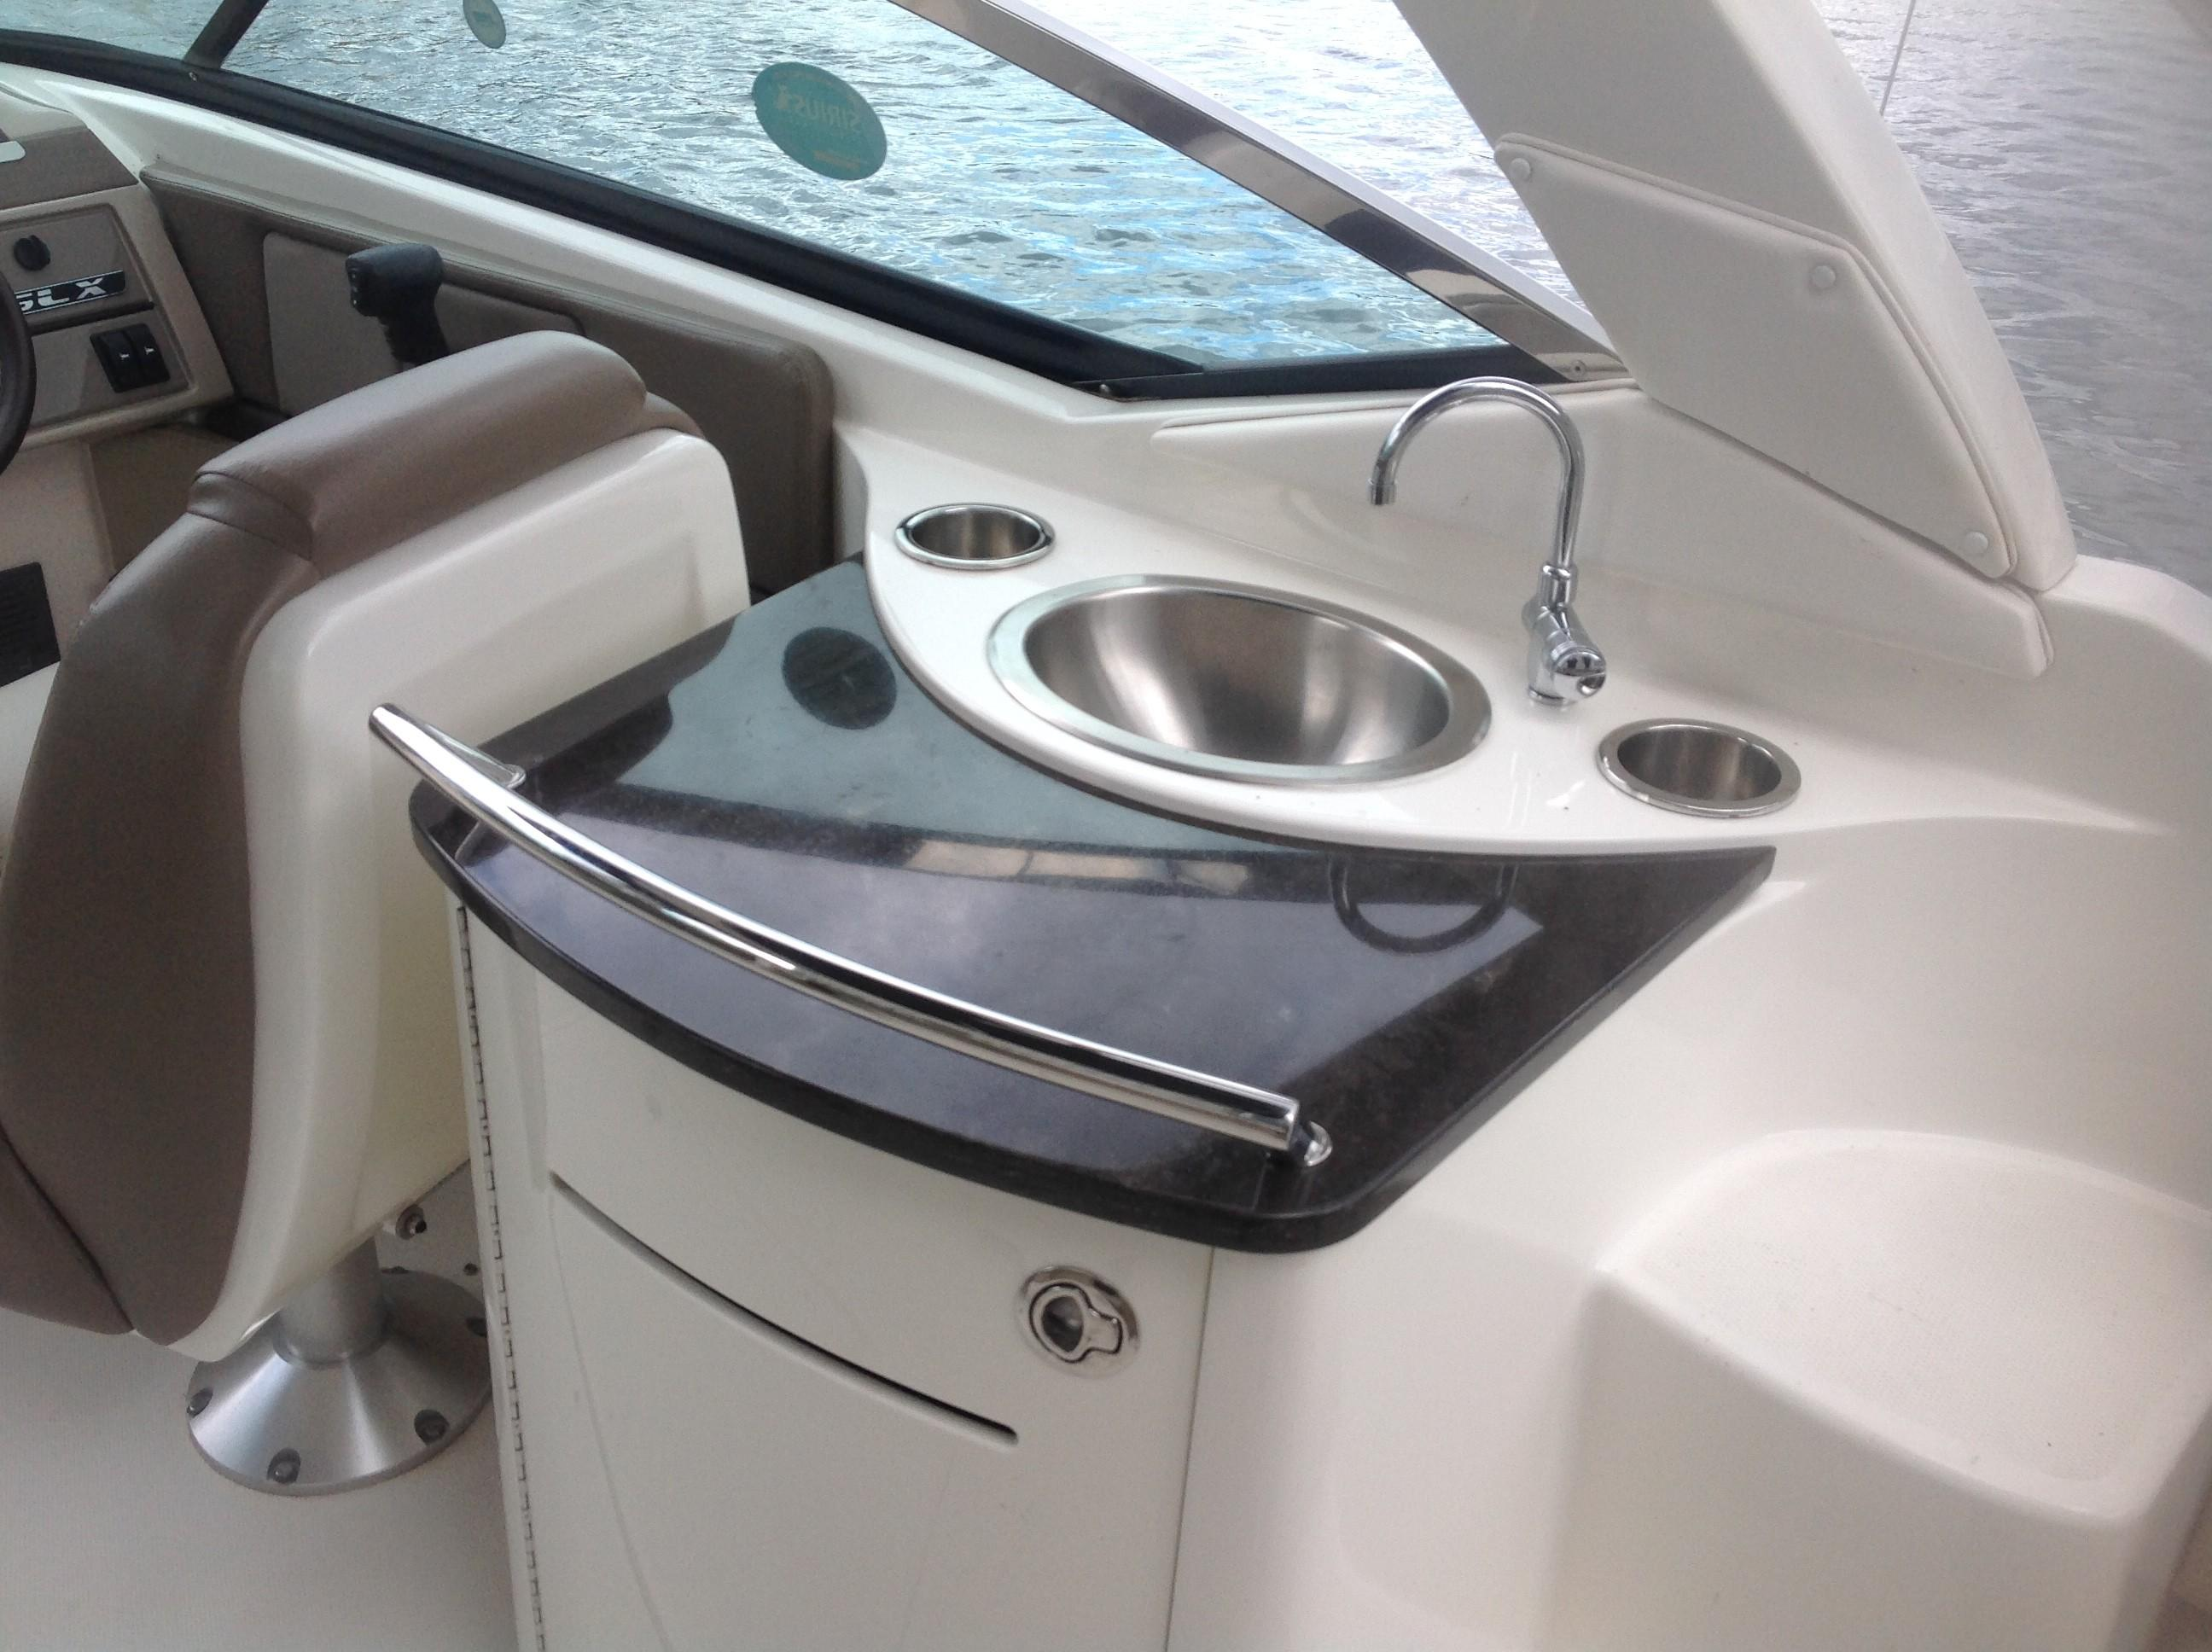 2011 Sea Ray boat for sale, model of the boat is 270 SLX & Image # 4 of 13